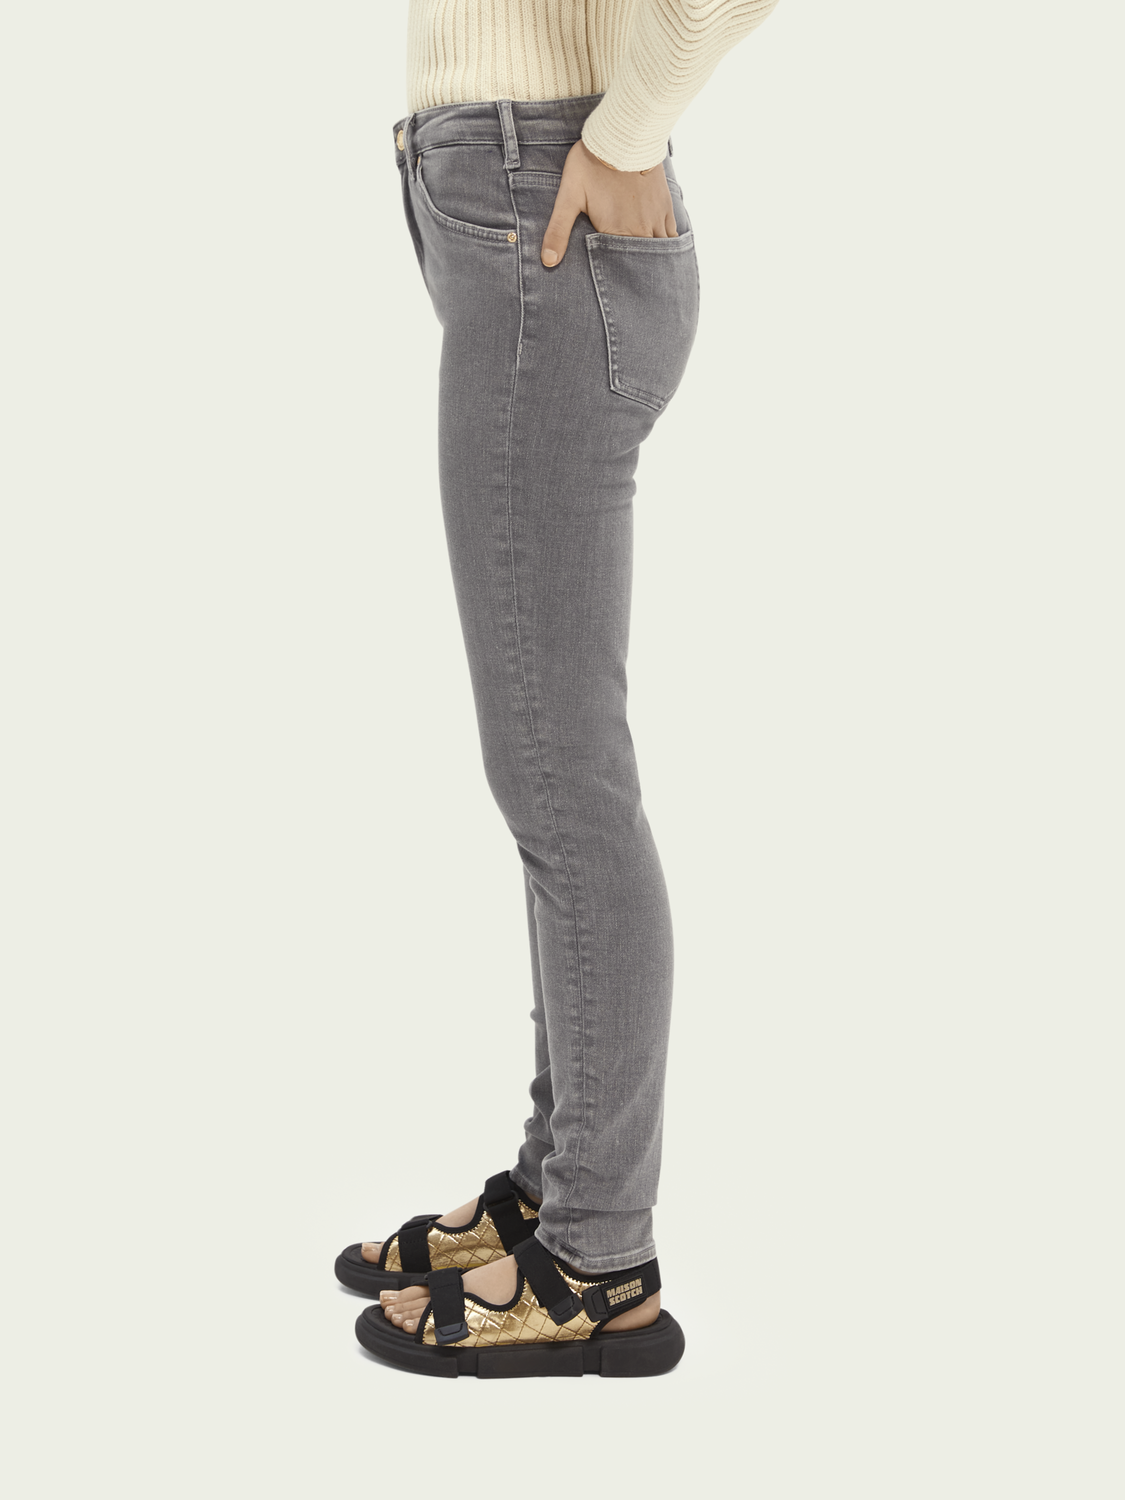 Damen Haut High-Rise Skinny Jeans– Back To My Roots